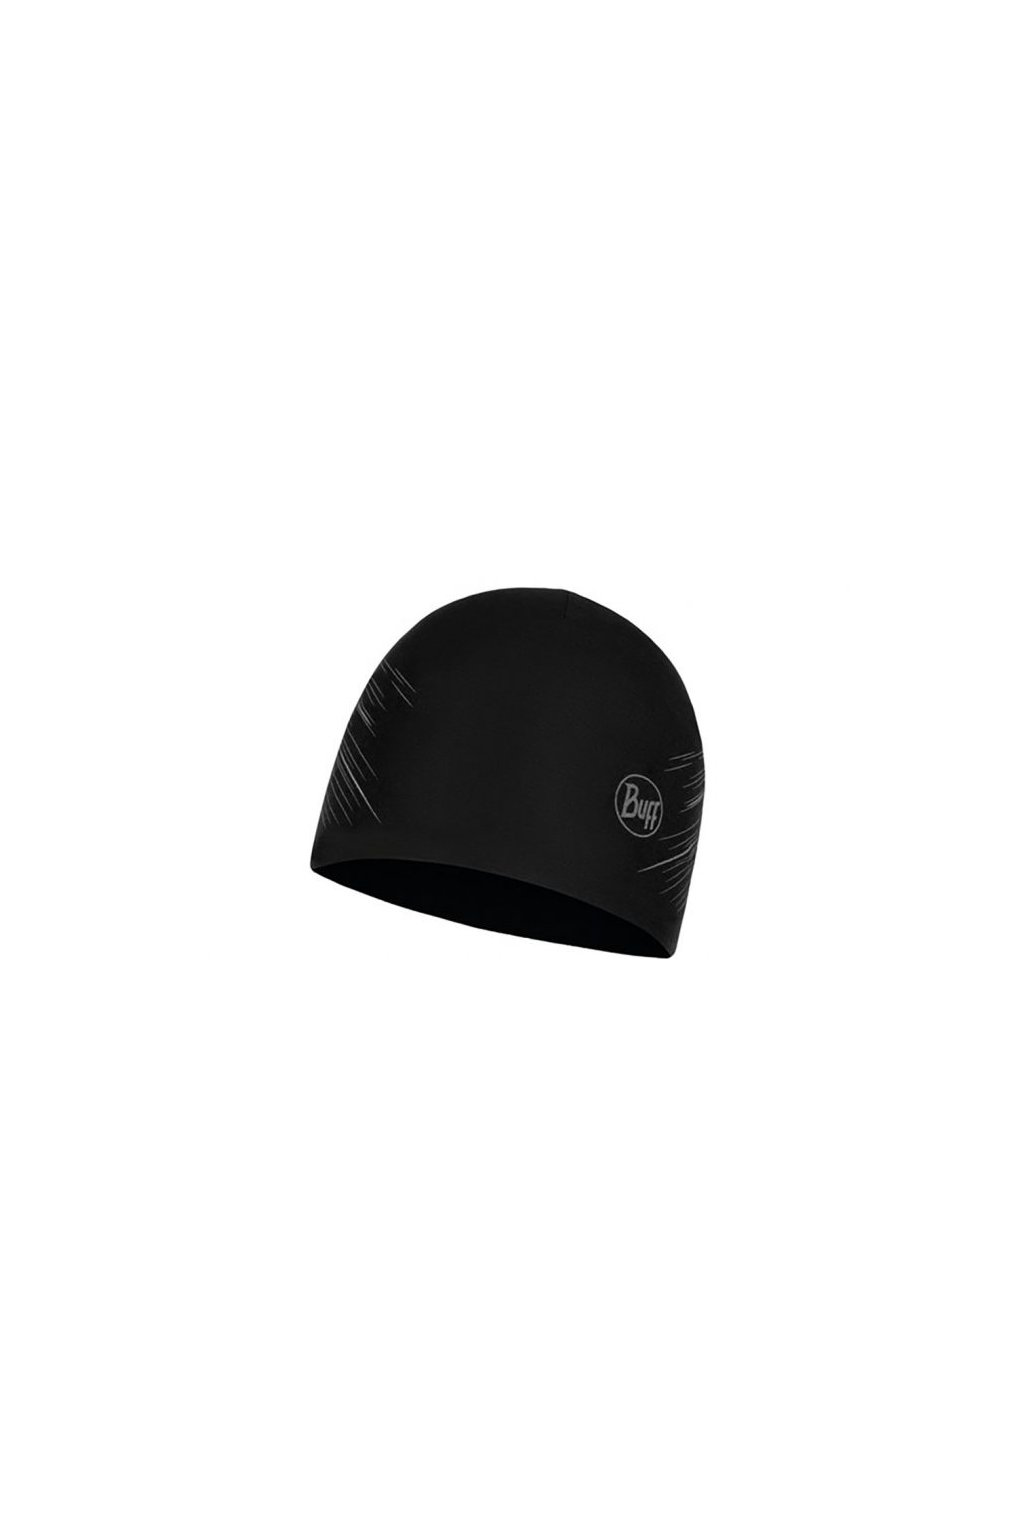 Buff Reversible Hat R Solid Black Unisex 678x381